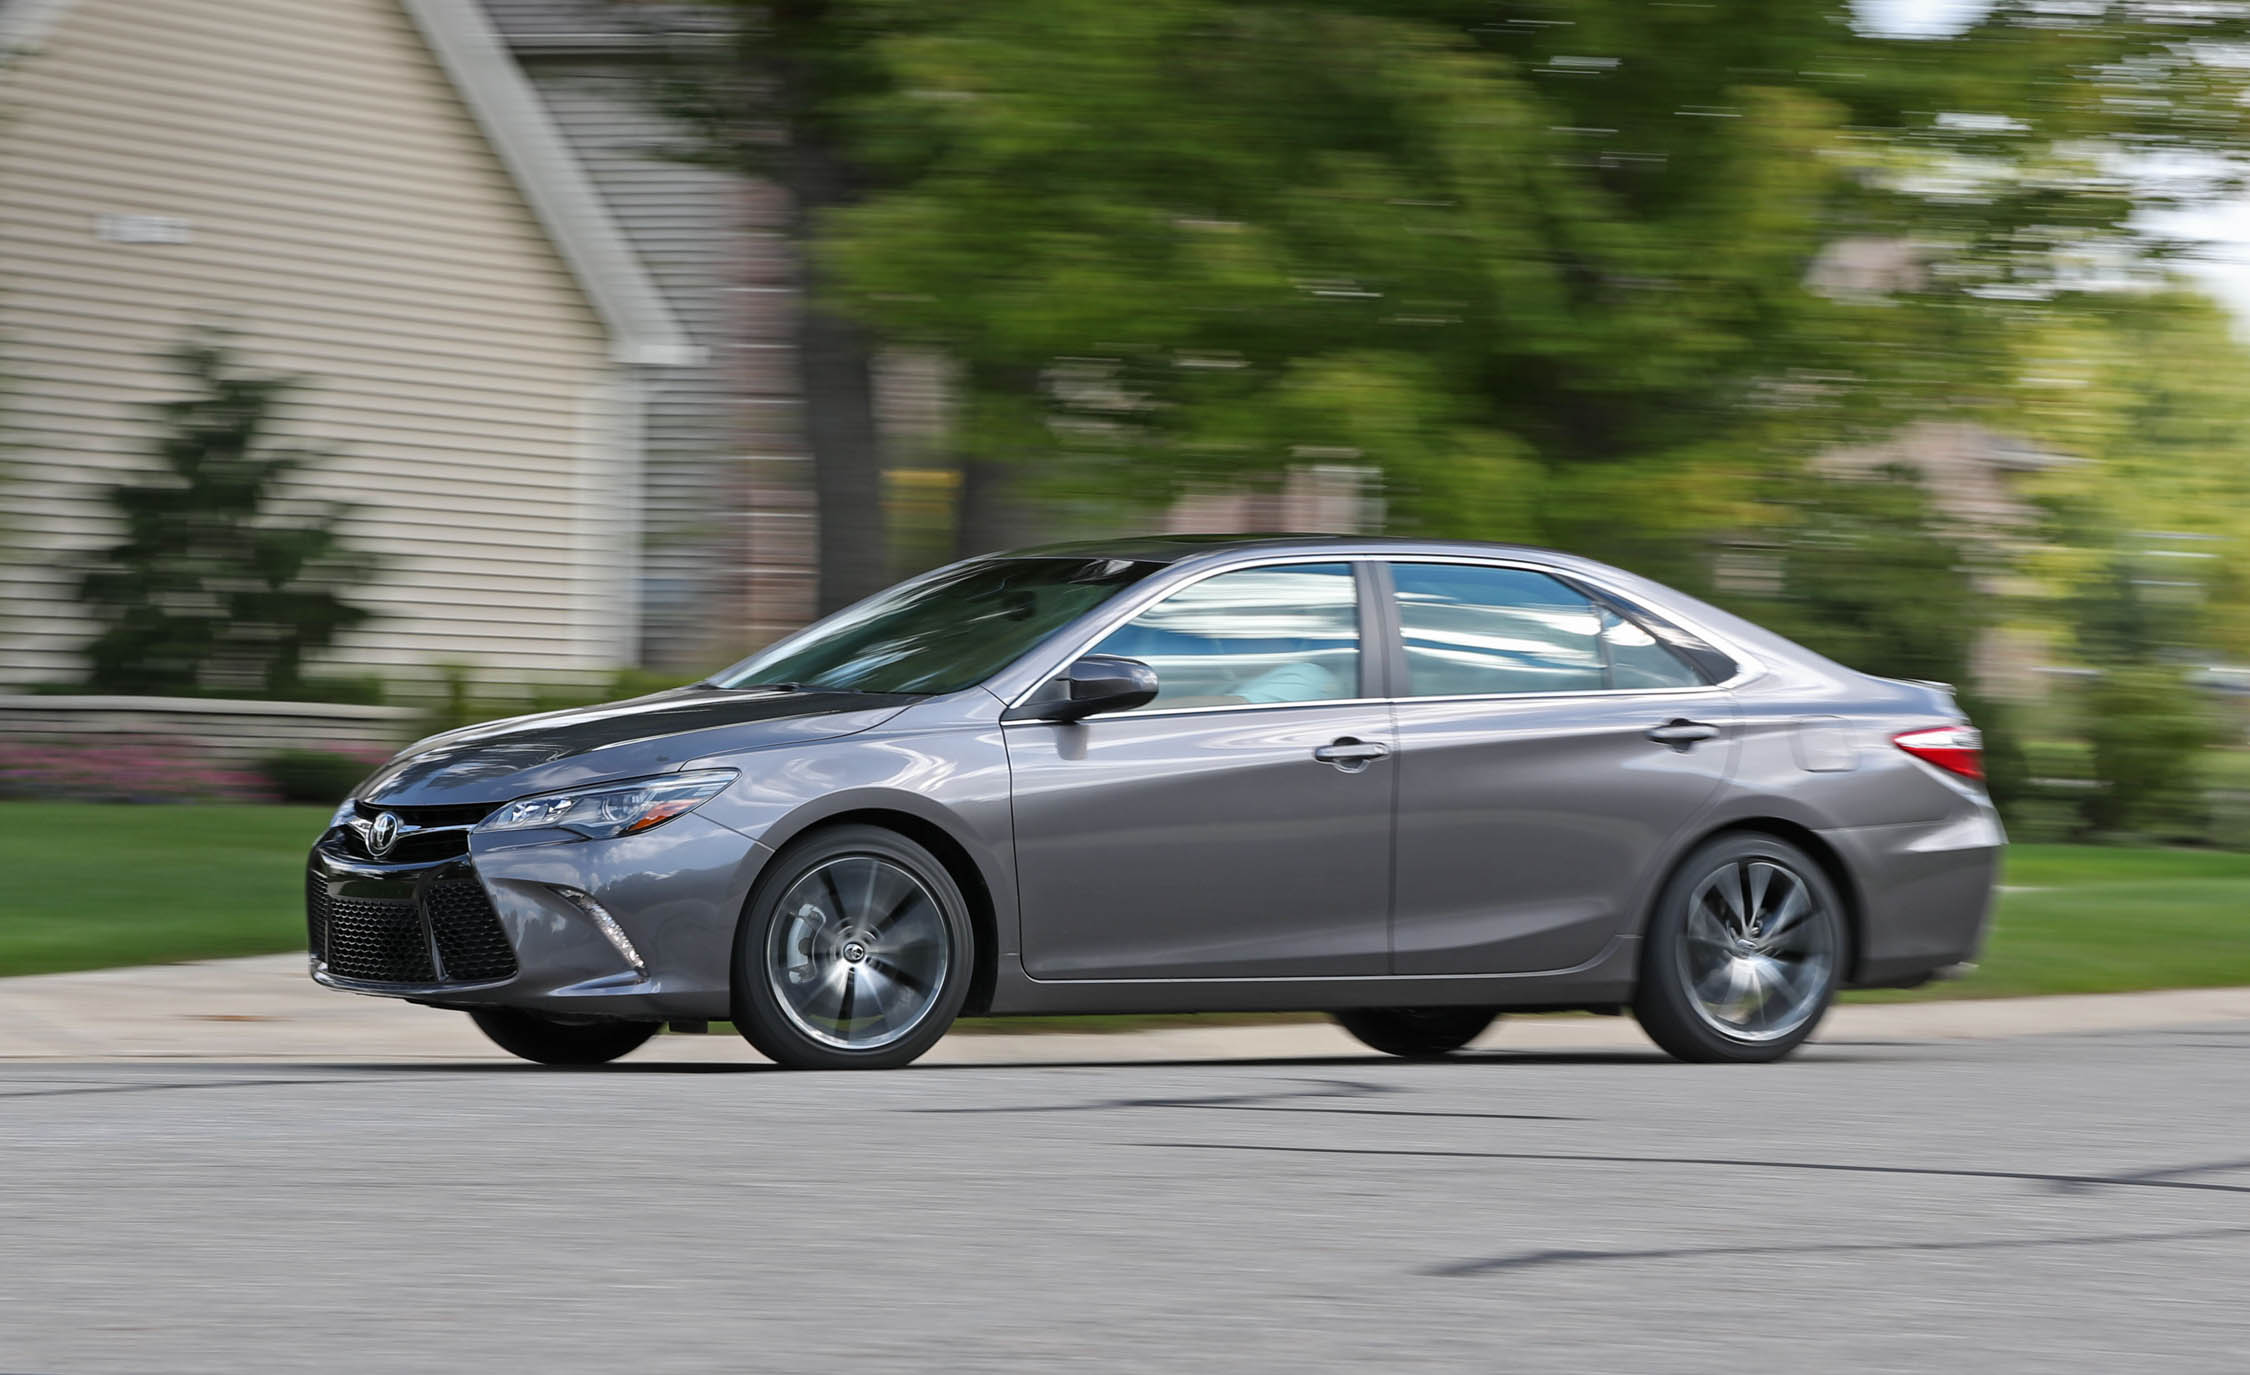 2017 Toyota Camry Test Drive Preview (Photo 29 of 37)